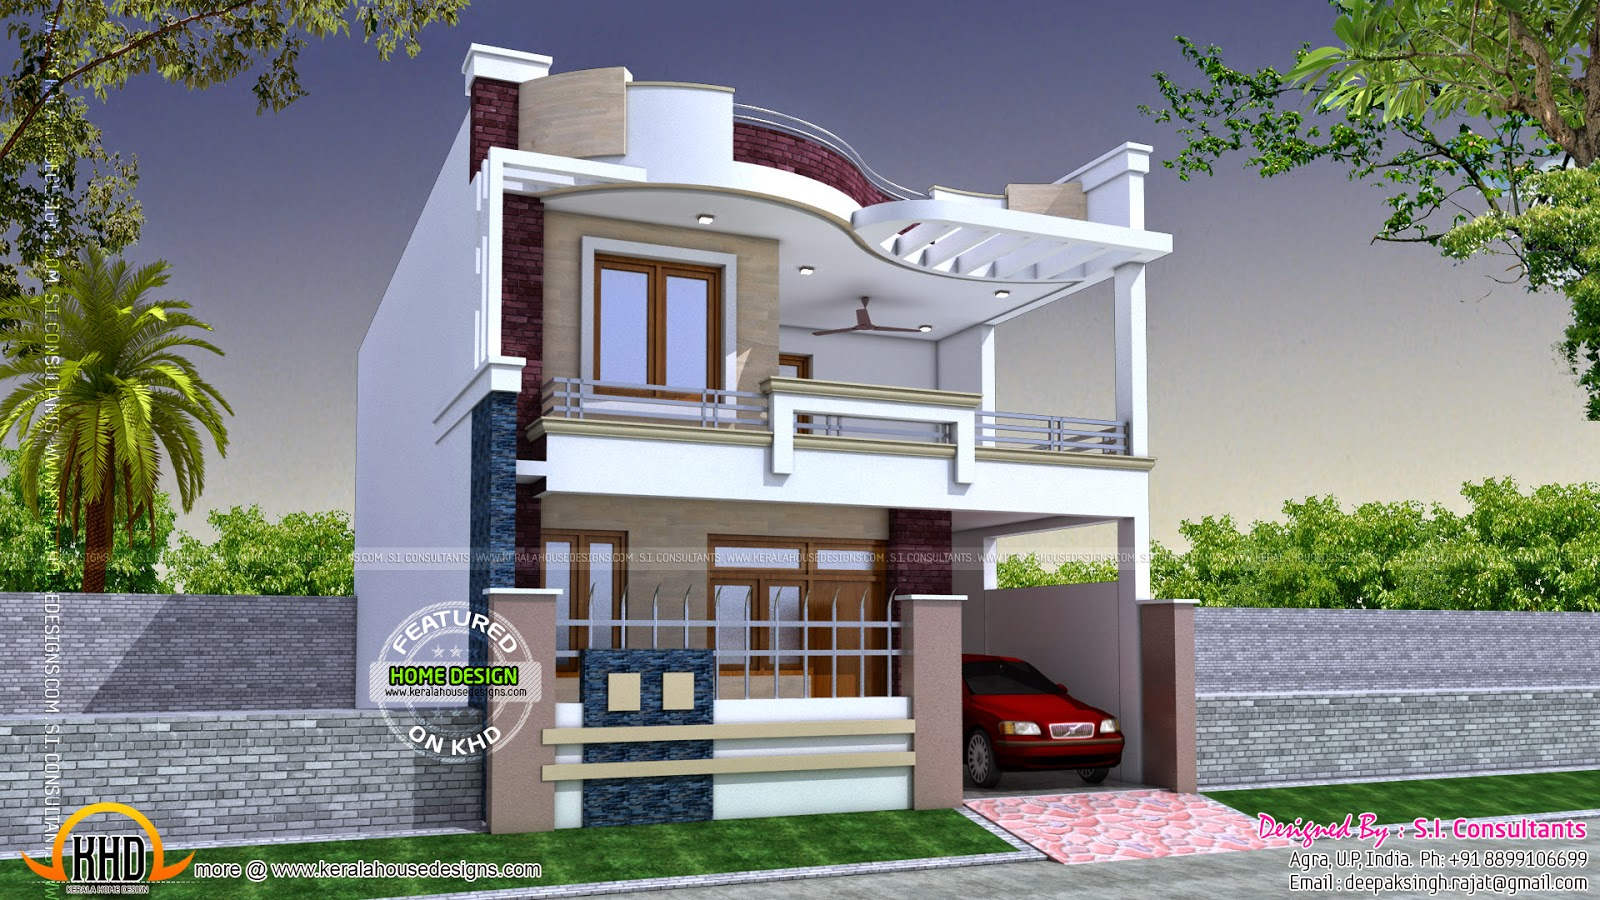 Modern indian home design kerala home design and floor plans for Best architecture home design in india